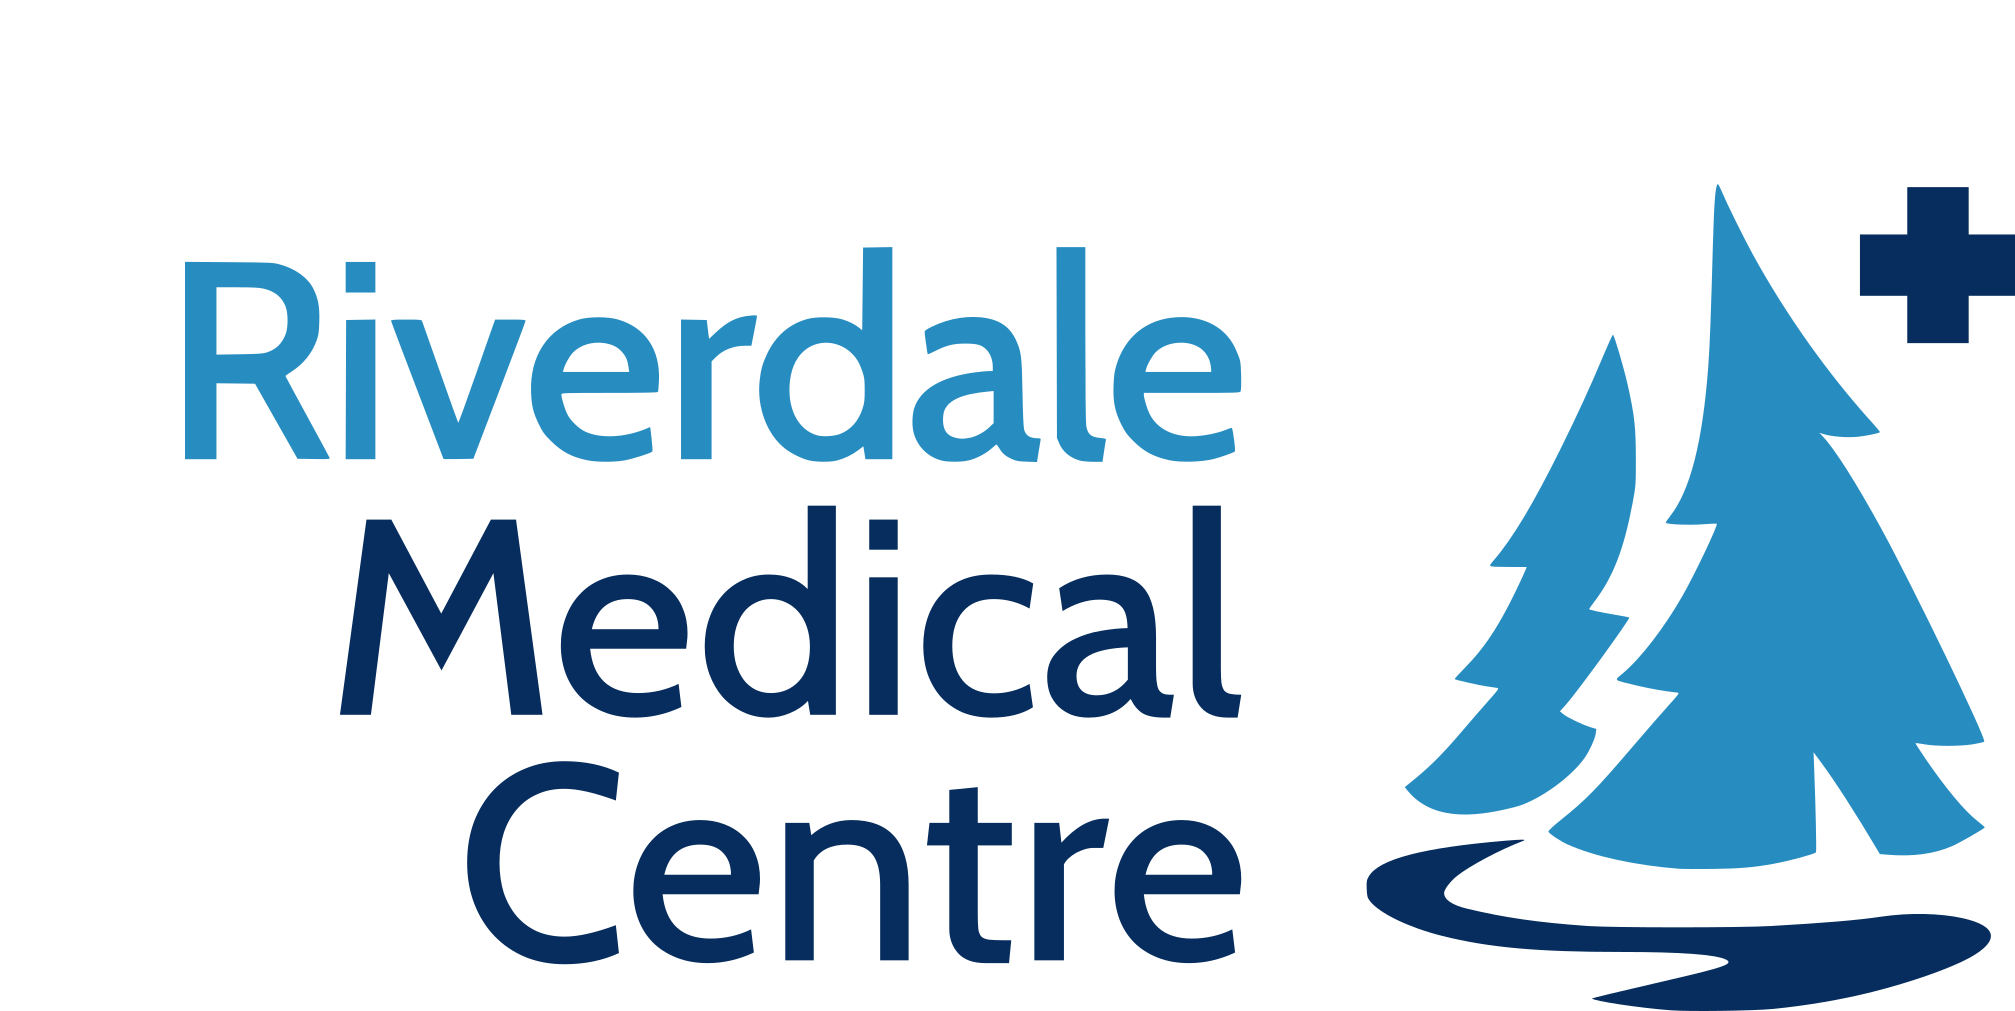 Riverdale Medical Center logo